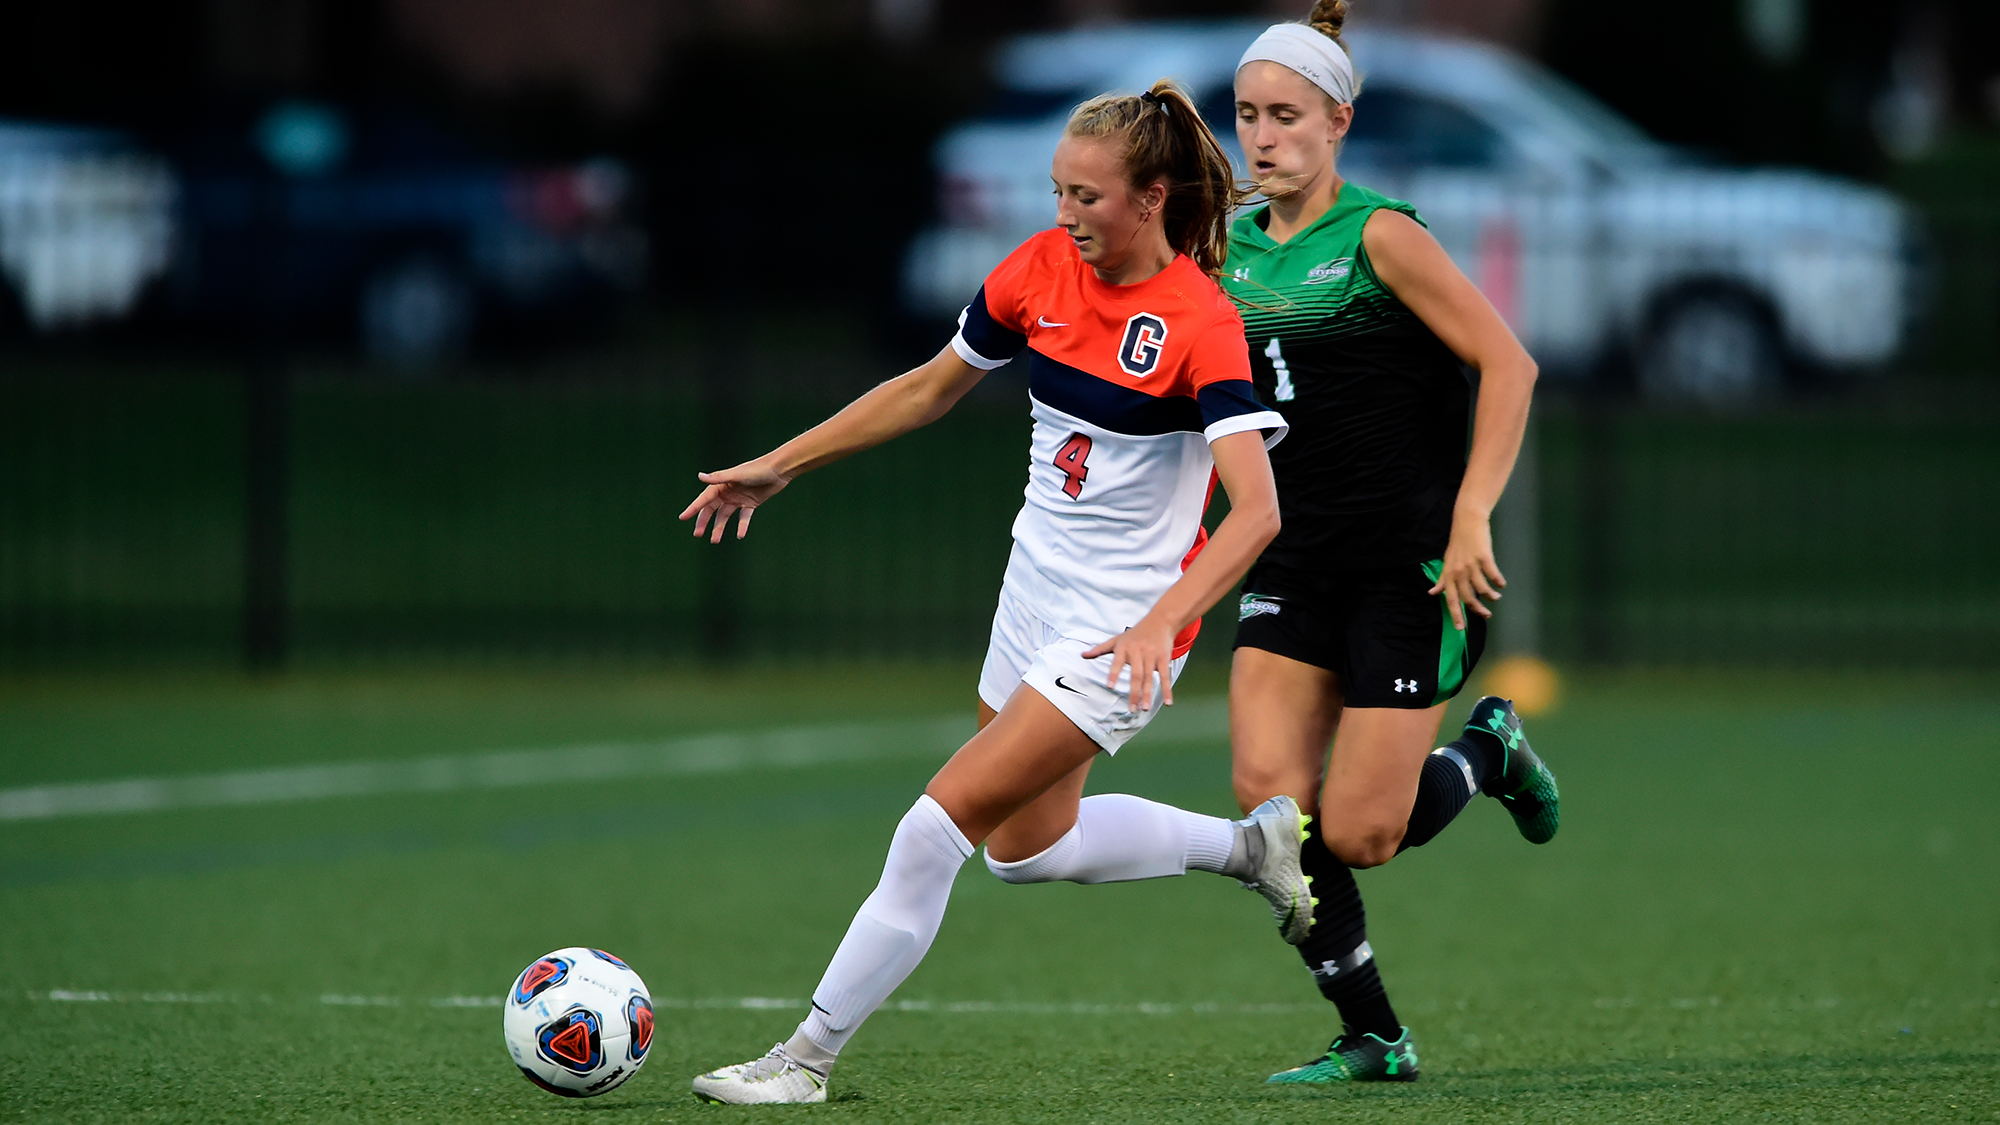 First-year Kelly Gaudian has had a big impact early in her college career (Photo courtesy of Gettysburg College Athletics)